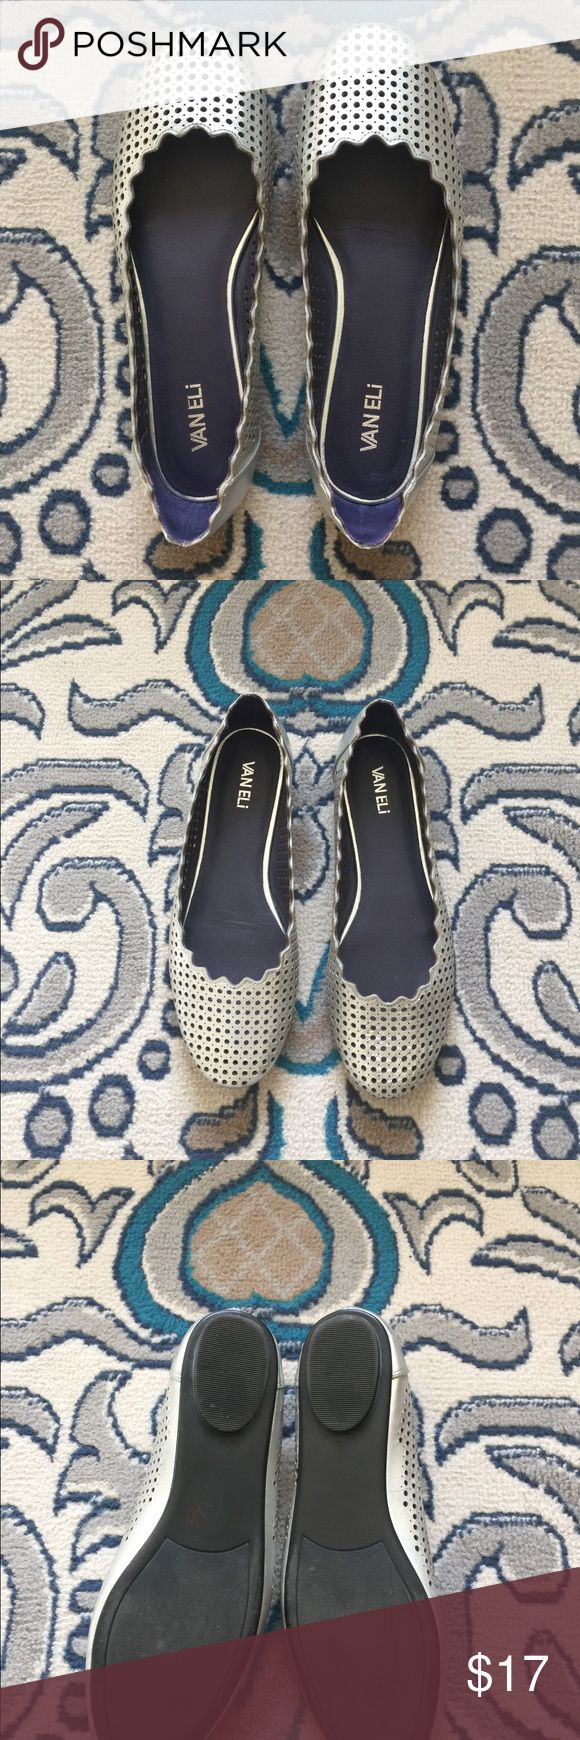 VANELI SILVER BALLET FLATS These adorable flats are gently used. Silver and perforated. Size 8.5. Great for the office or bring some shimmer to any outfit. Bundle and save! Vaneli Shoes Flats & Loafers